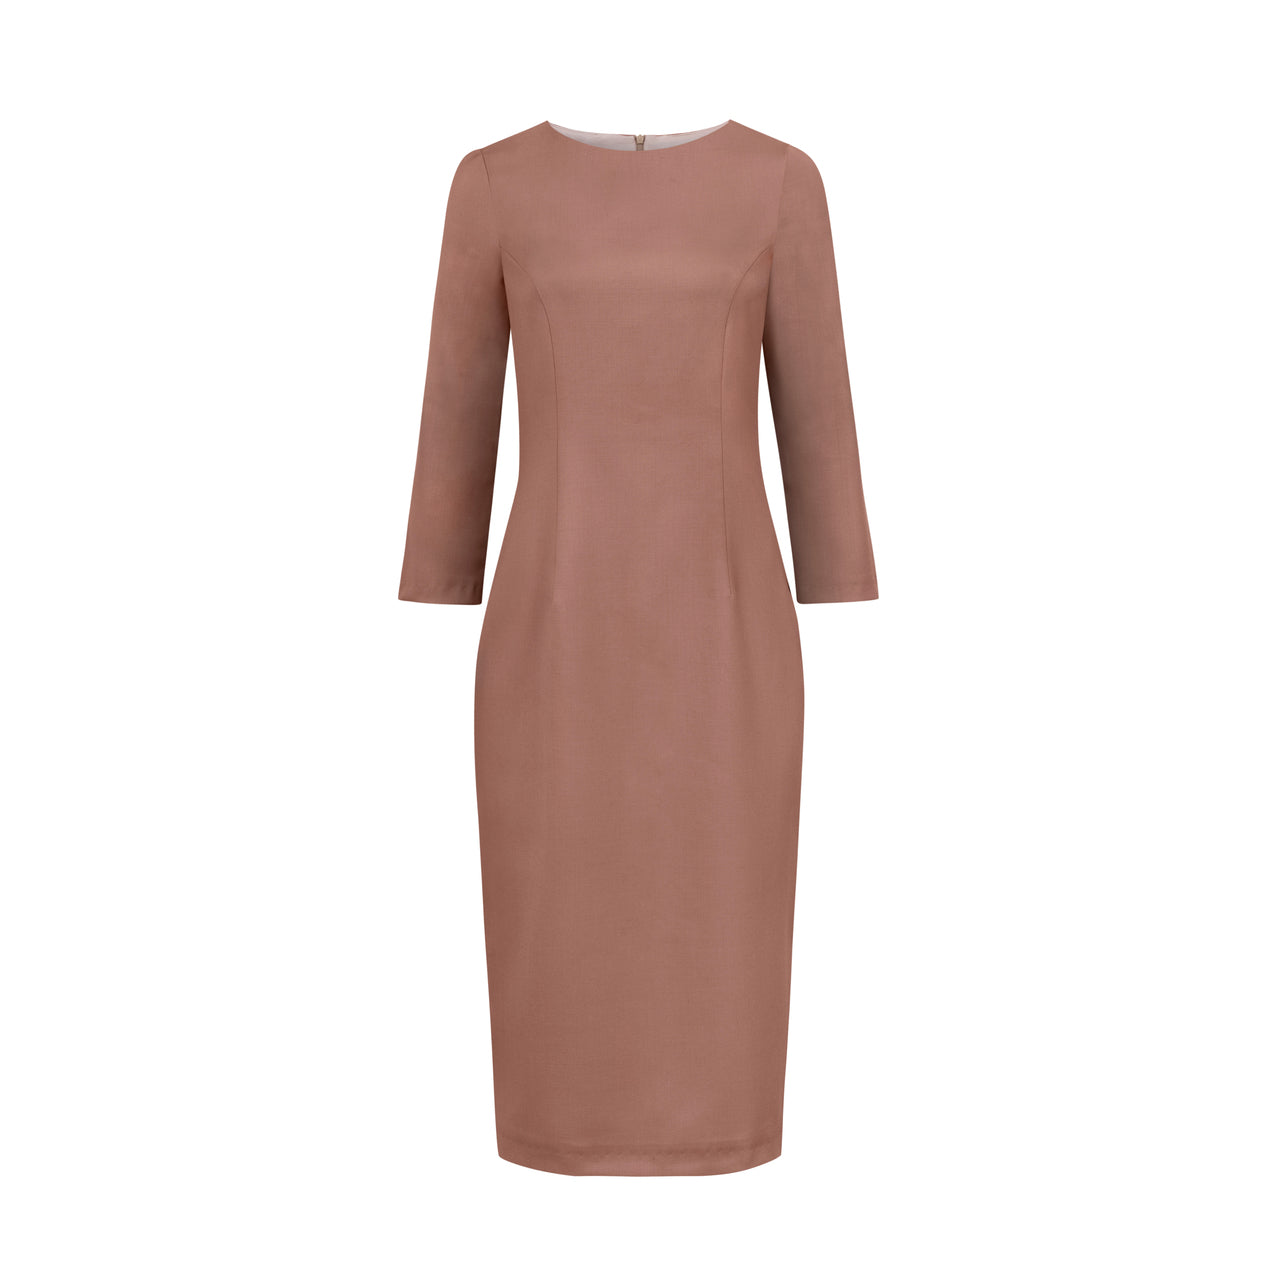 BEIGE PENCIL DRESS WITH SLEEVES